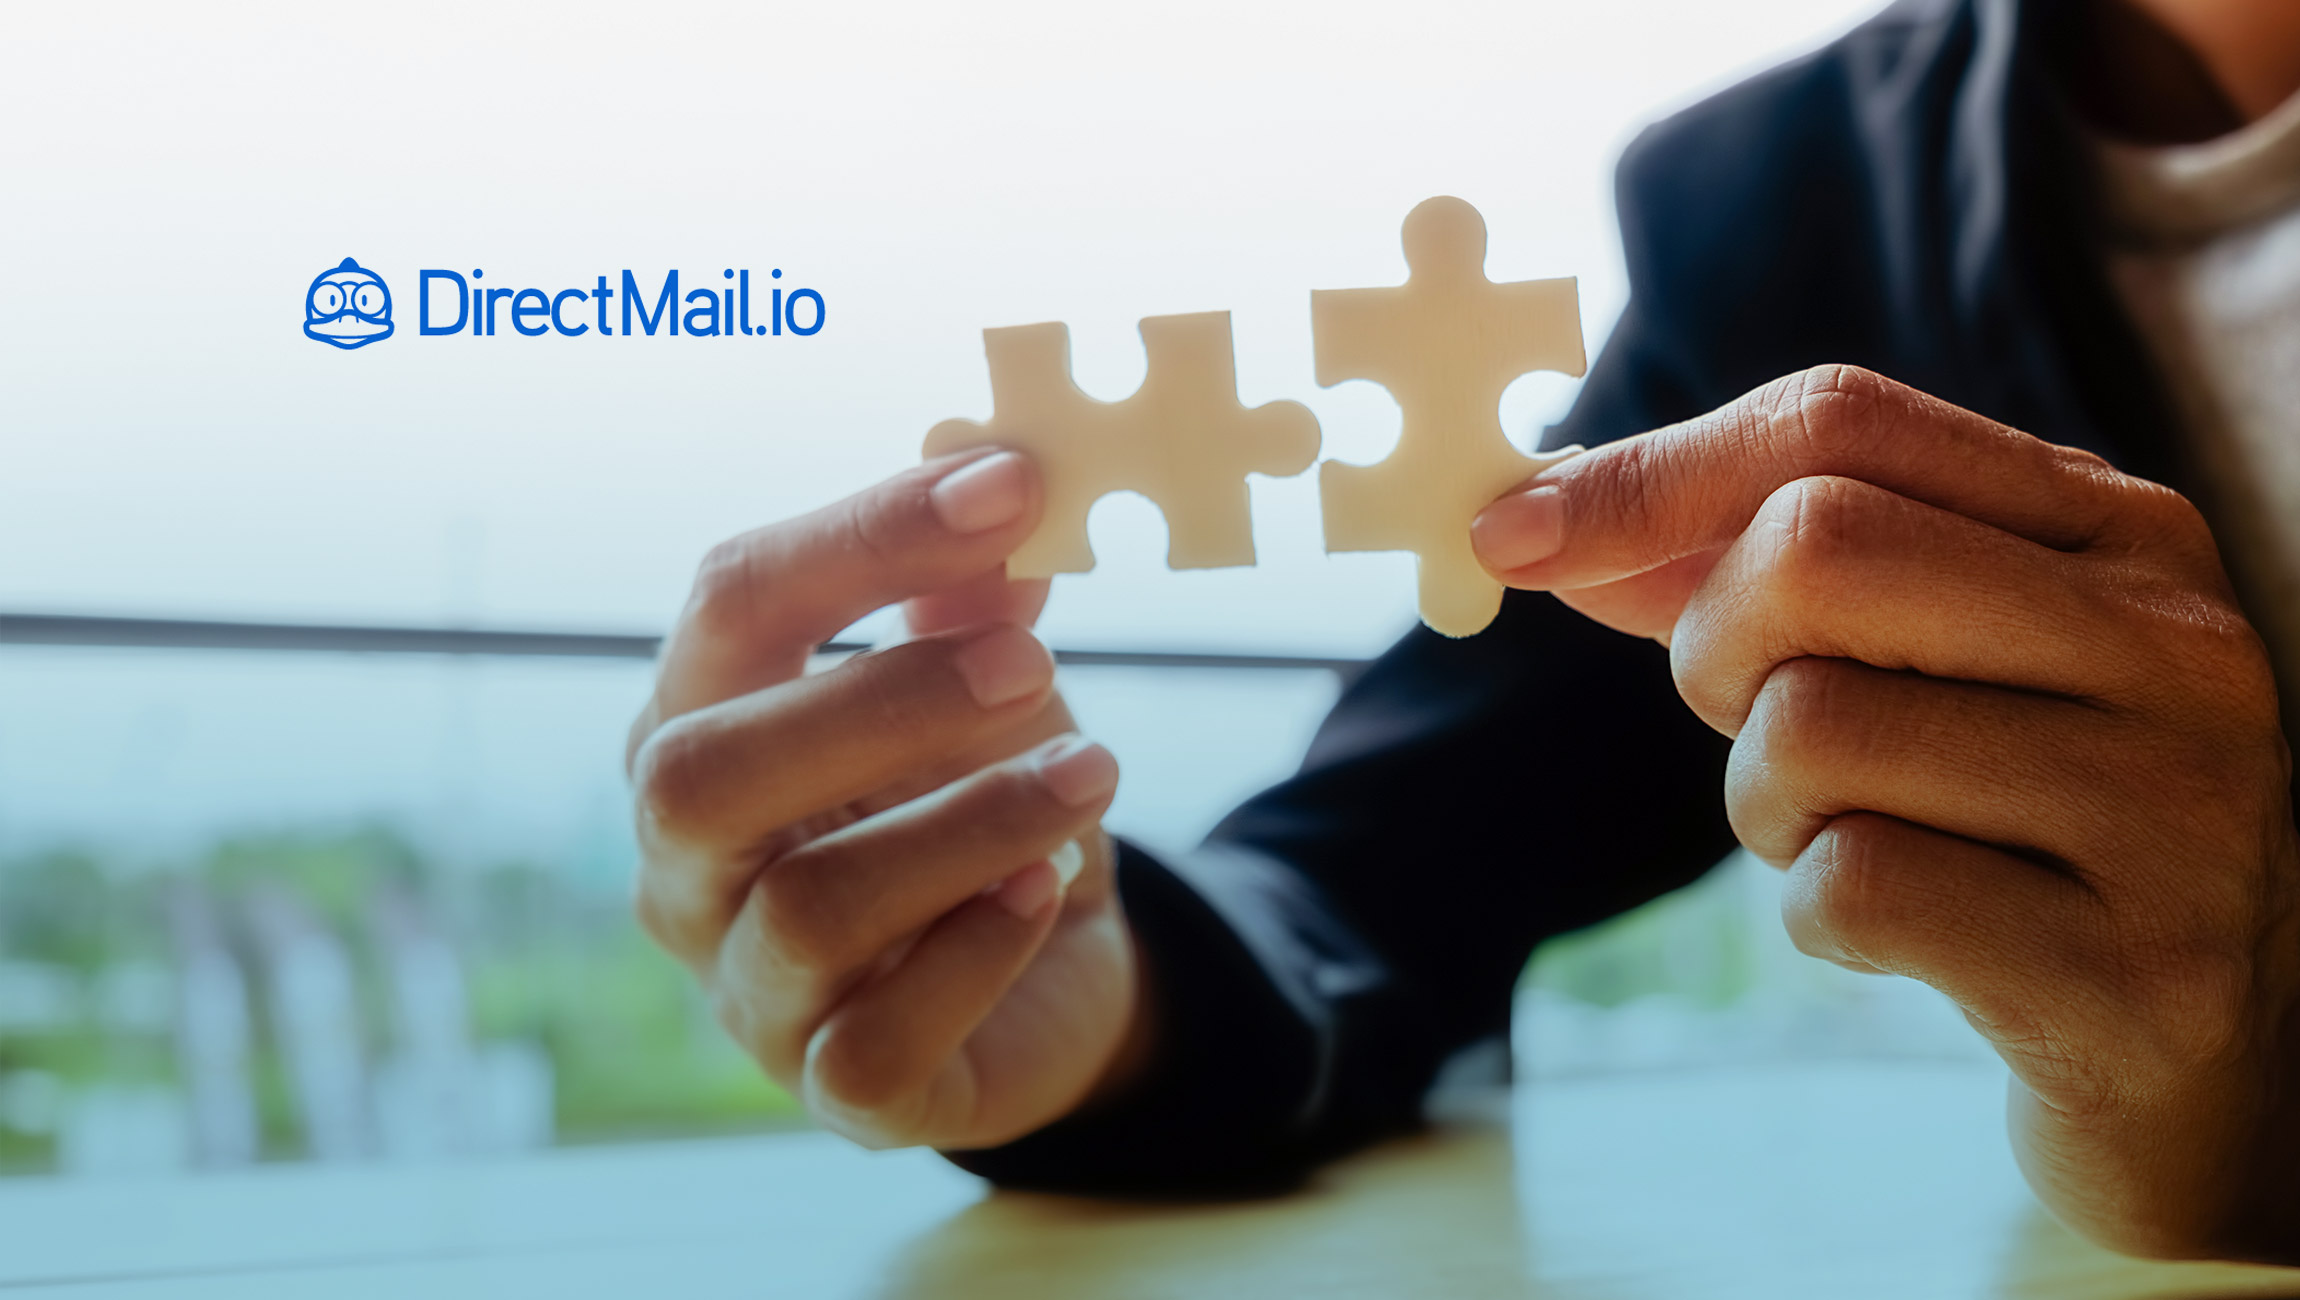 DirectMail.io's Voice Device Integration Sets the Pace for Marketing Innovation by Being the First to Combine Google Home and Amazon Alexa With Direct Mail